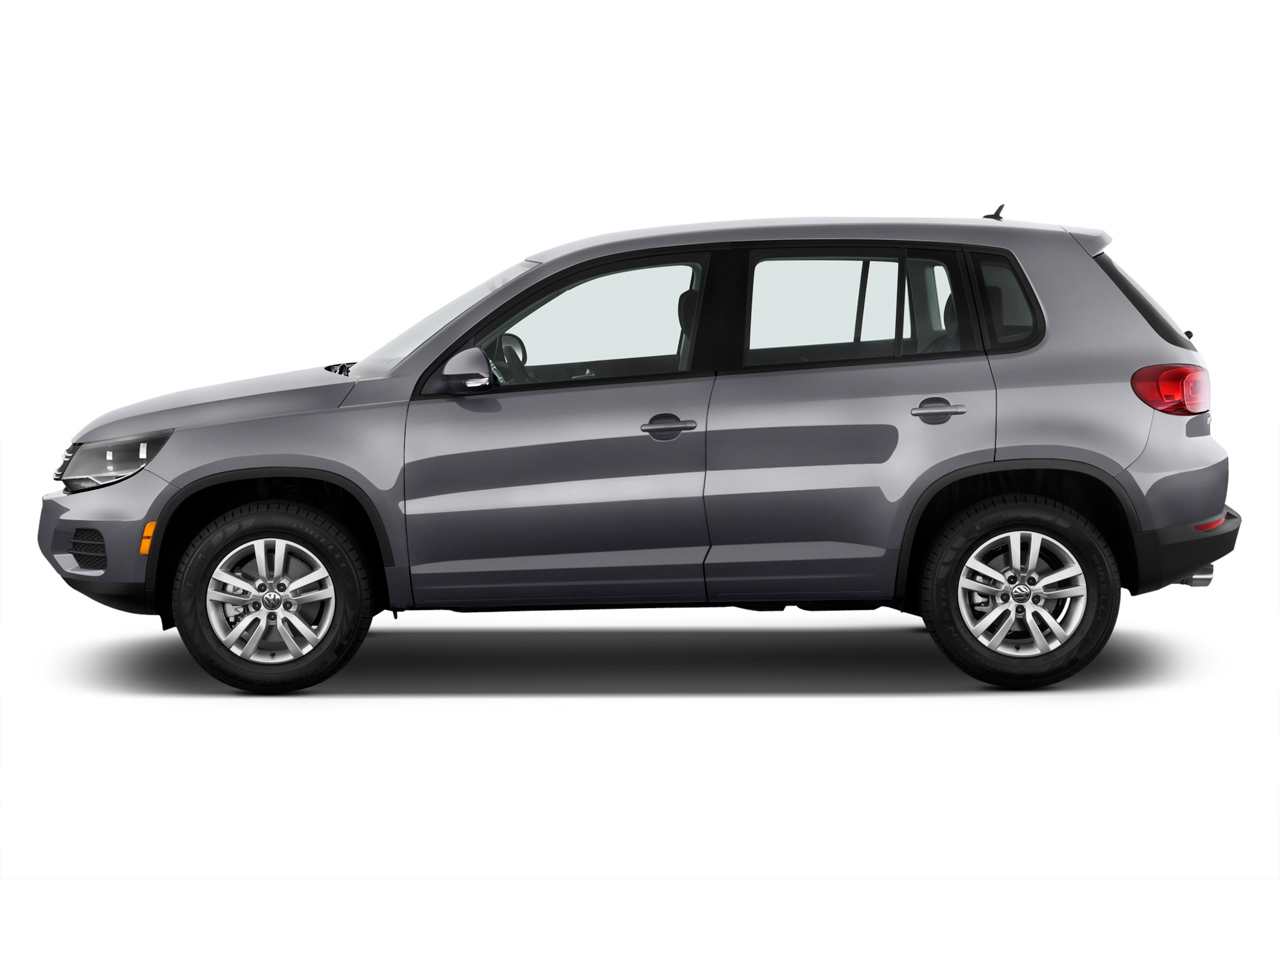 2012 Volkswagen Tiguan Vw Review Ratings Specs Prices And Photos The Car Connection